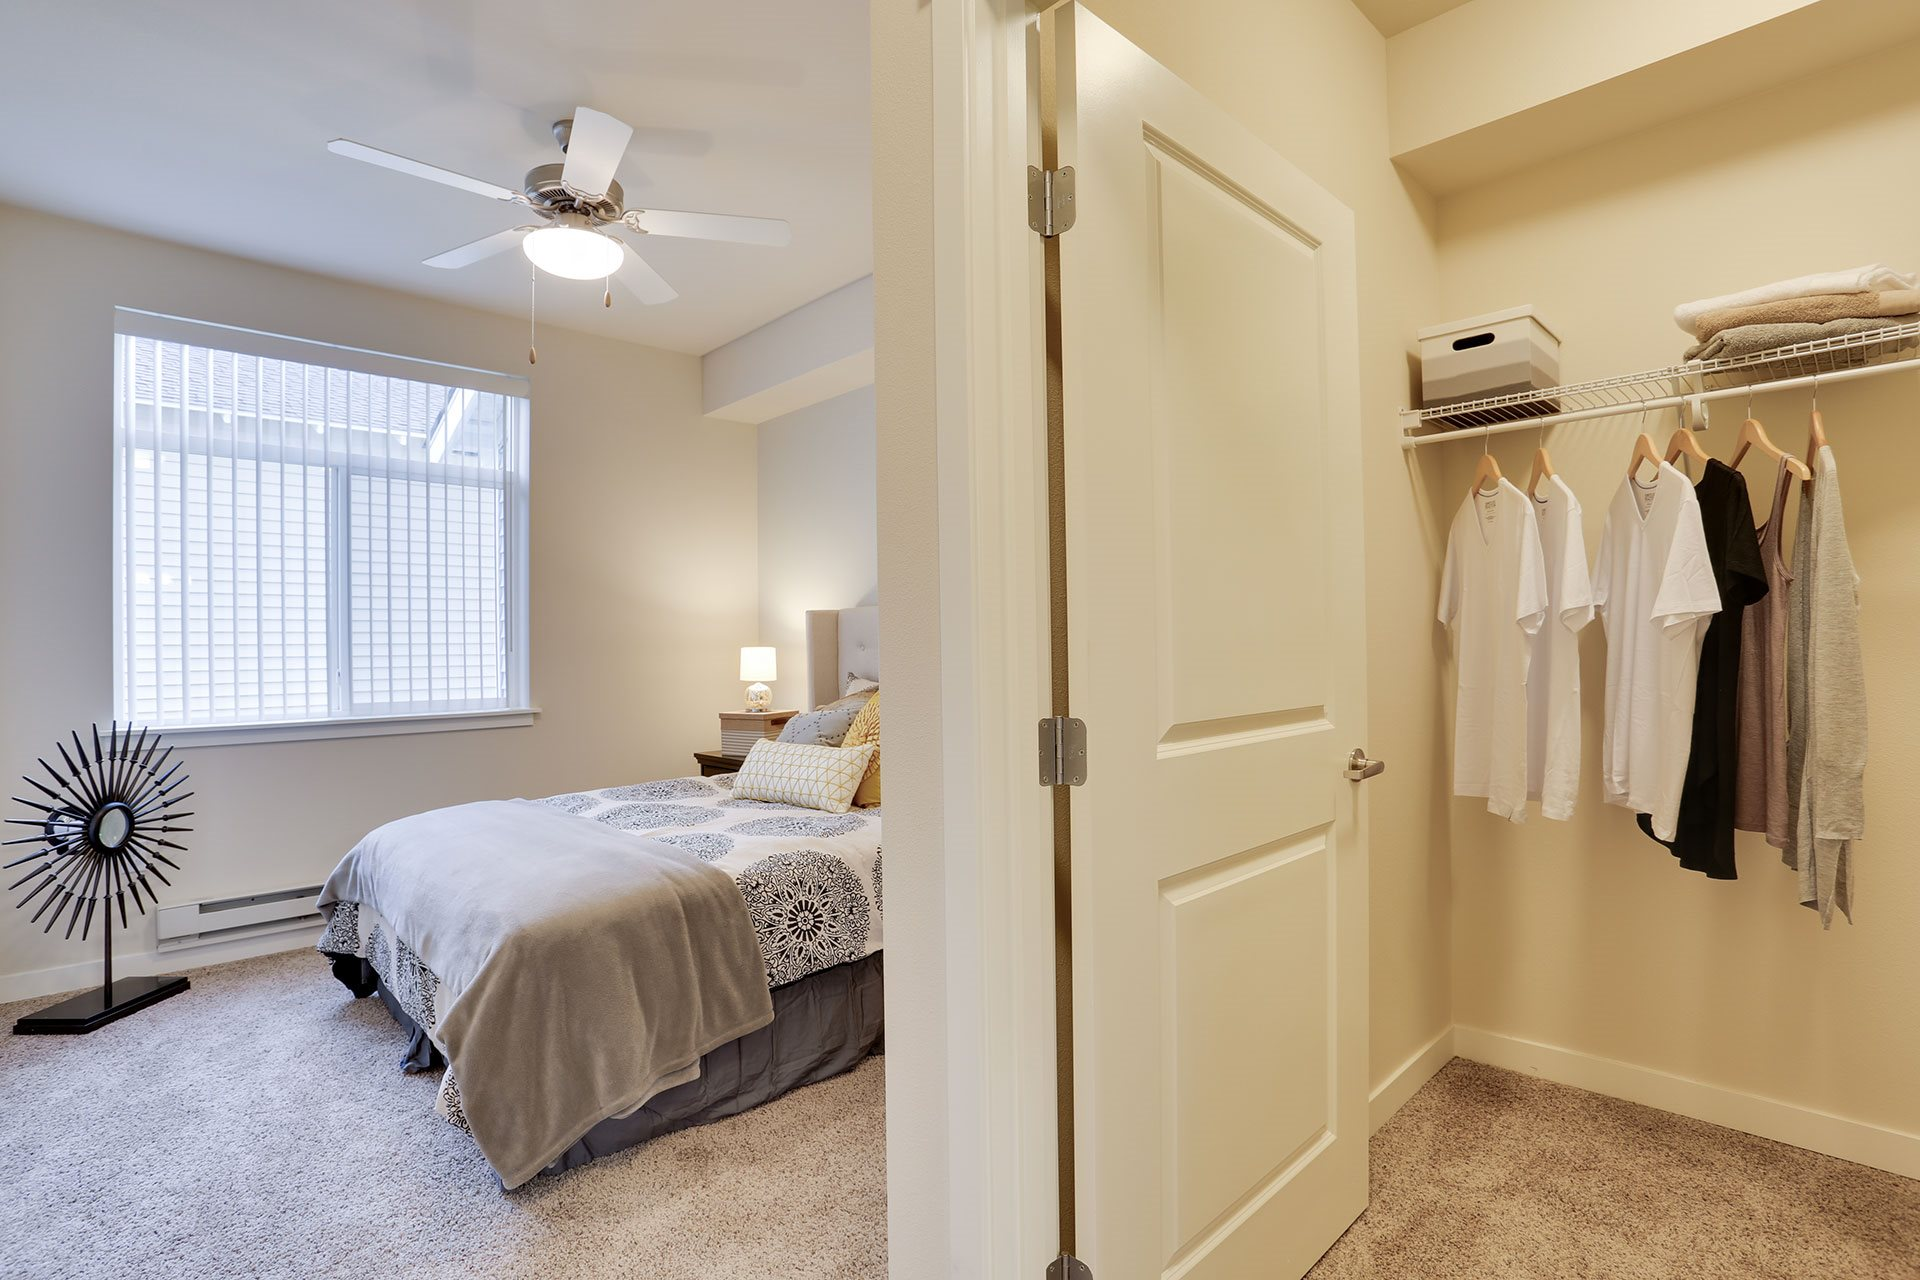 River House Apartments Bedroom and Walk-In Closet